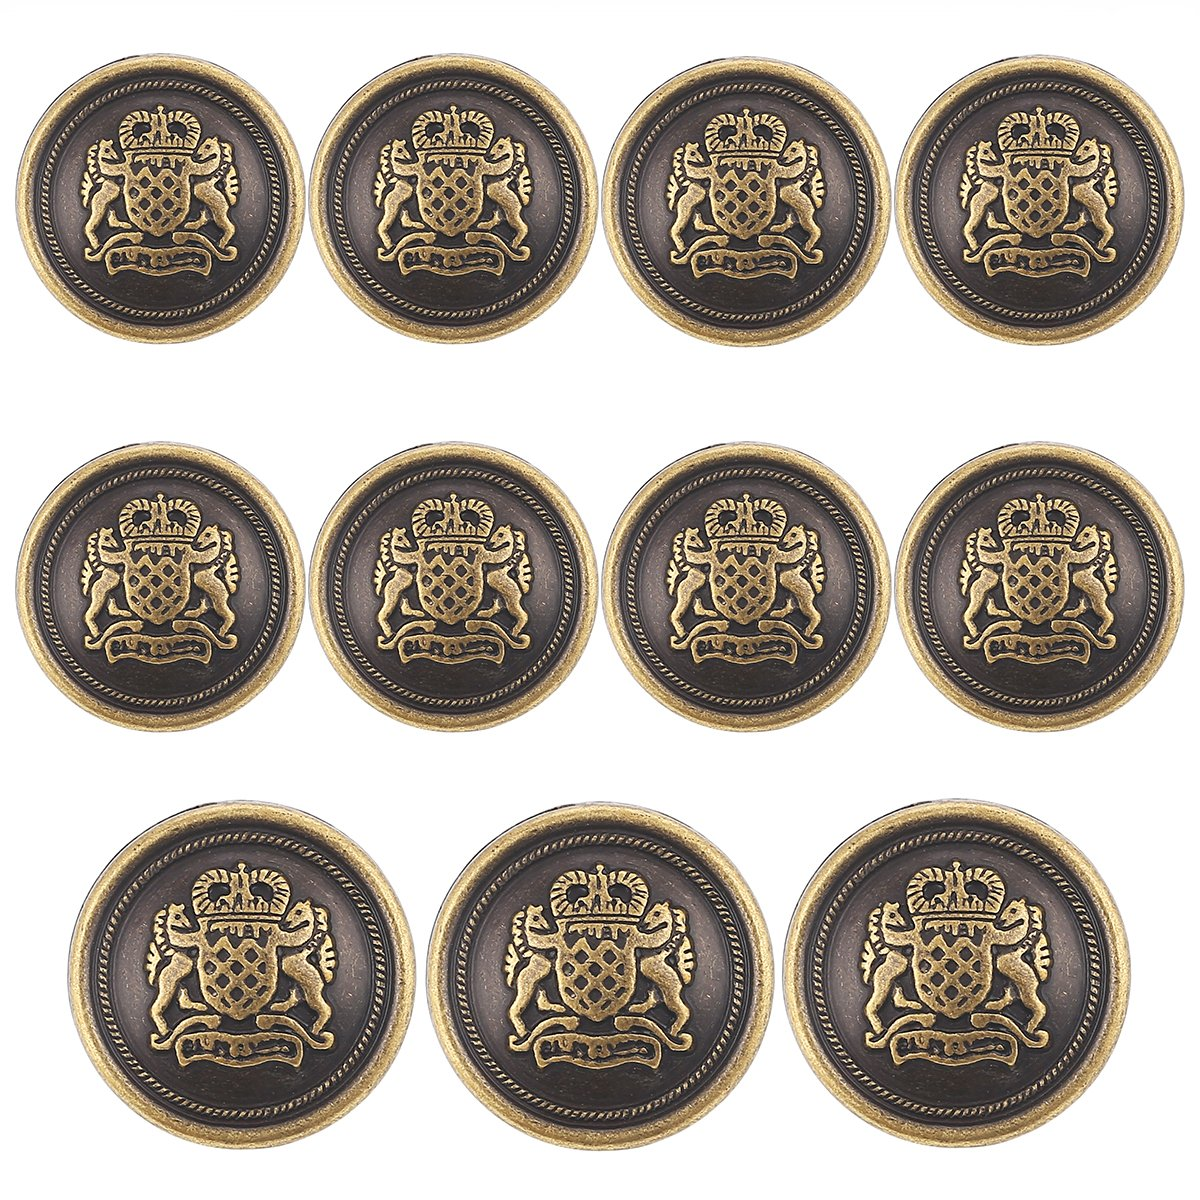 11 Piece Antiqued Bronze Metal Blazer Button Set - Crown Lion- For Blazer, Suits, Sport Coat, Uniform, Jacket Shuang Dong 4337004458